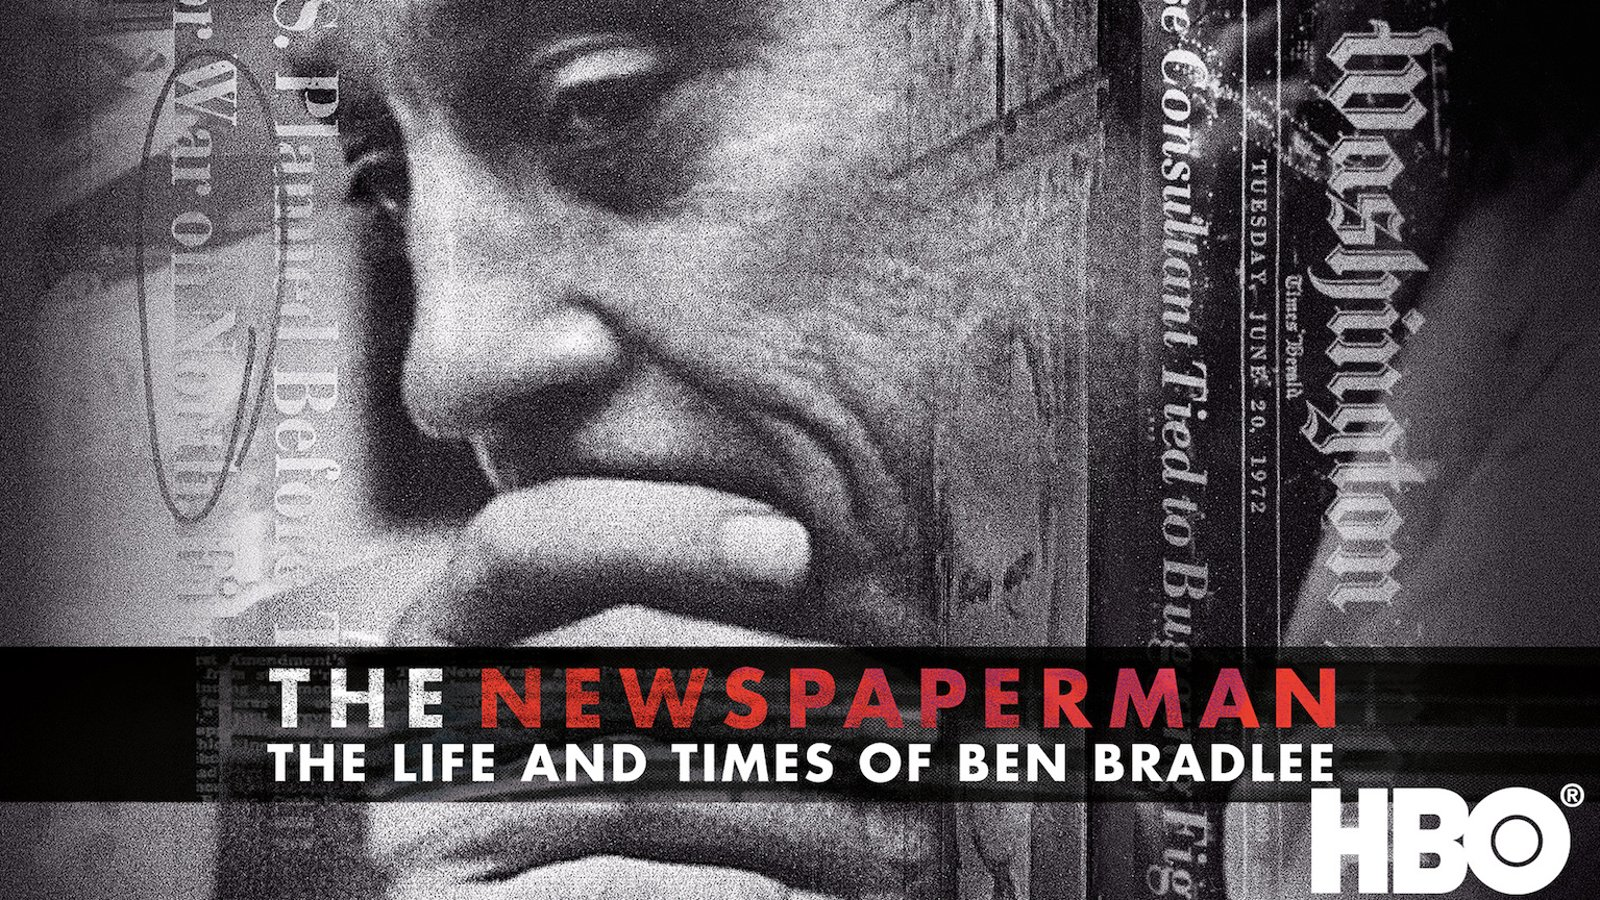 The Newspaper Man - The Life and Times of Ben Bradlee